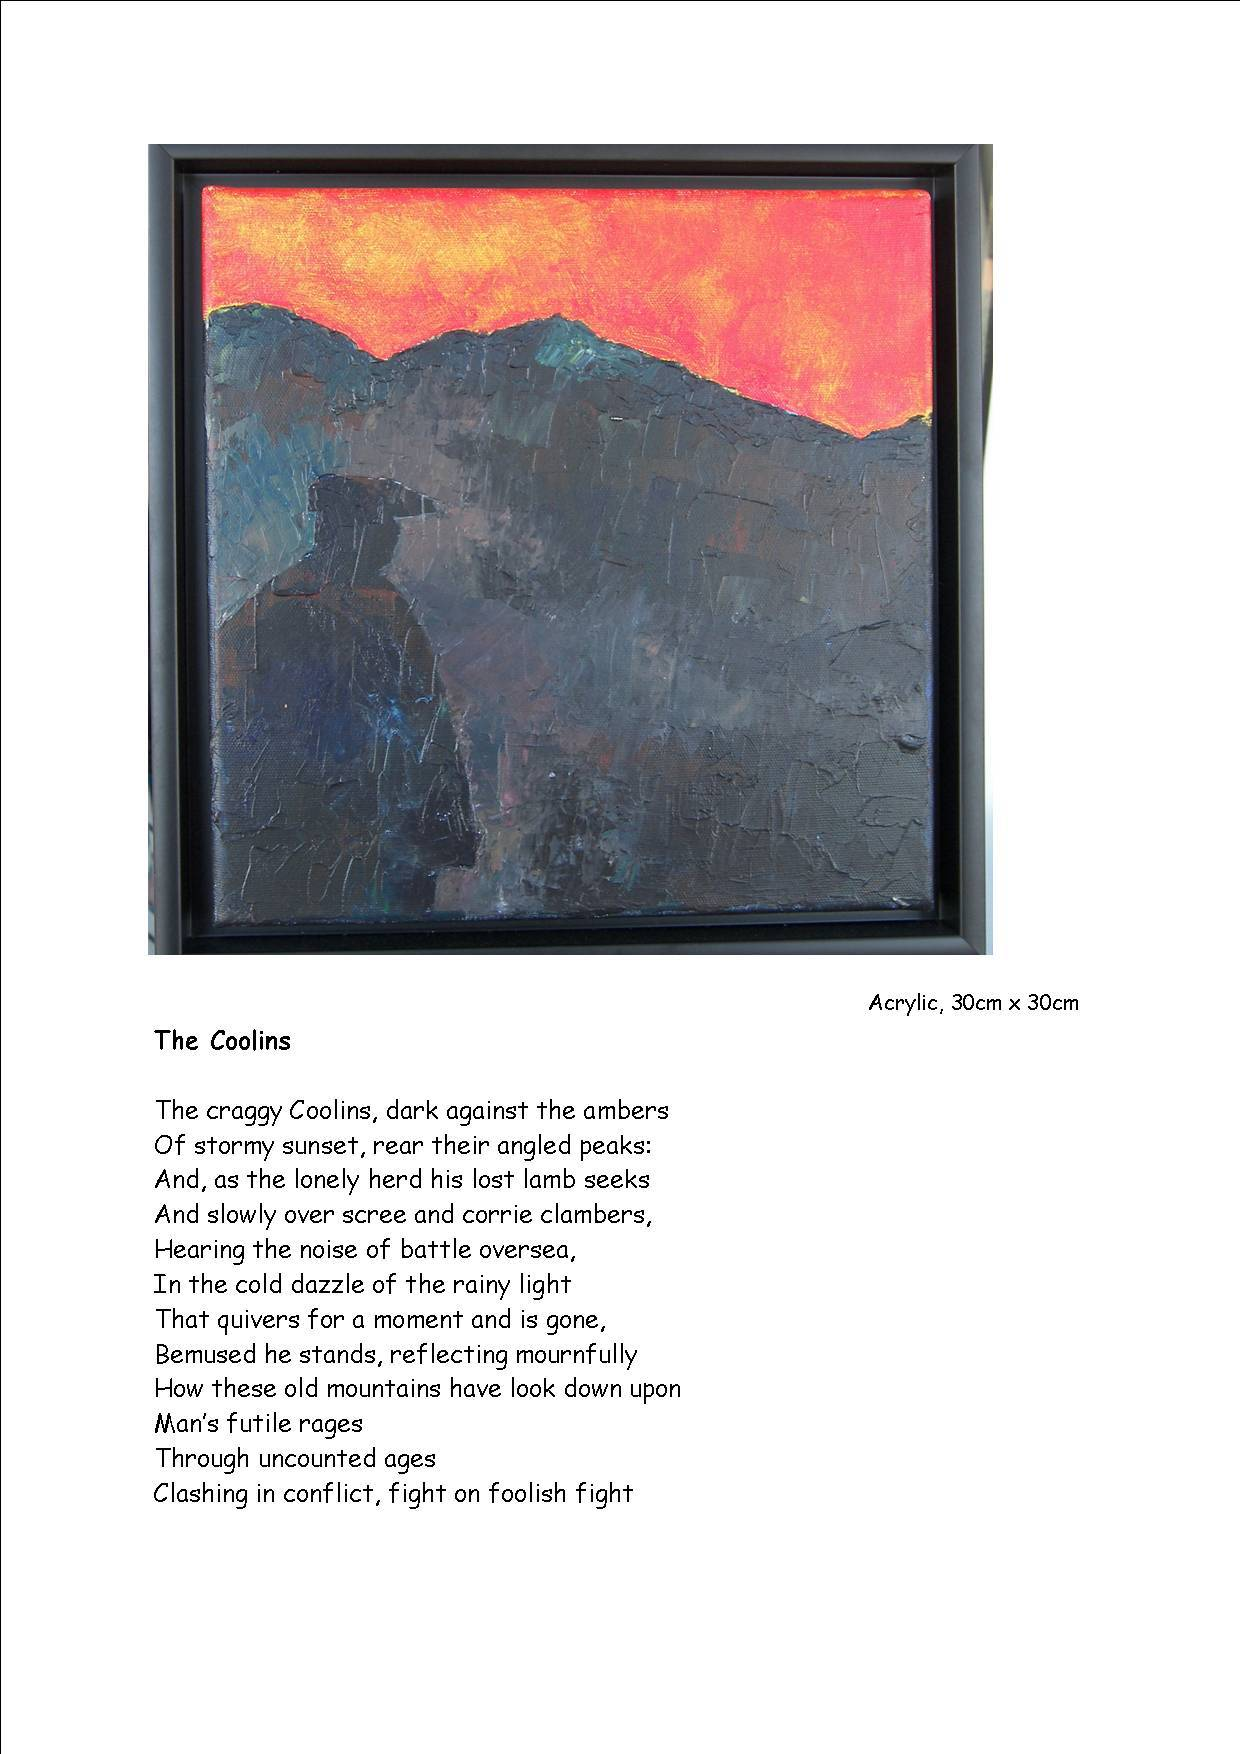 The Coolins - poem and picture